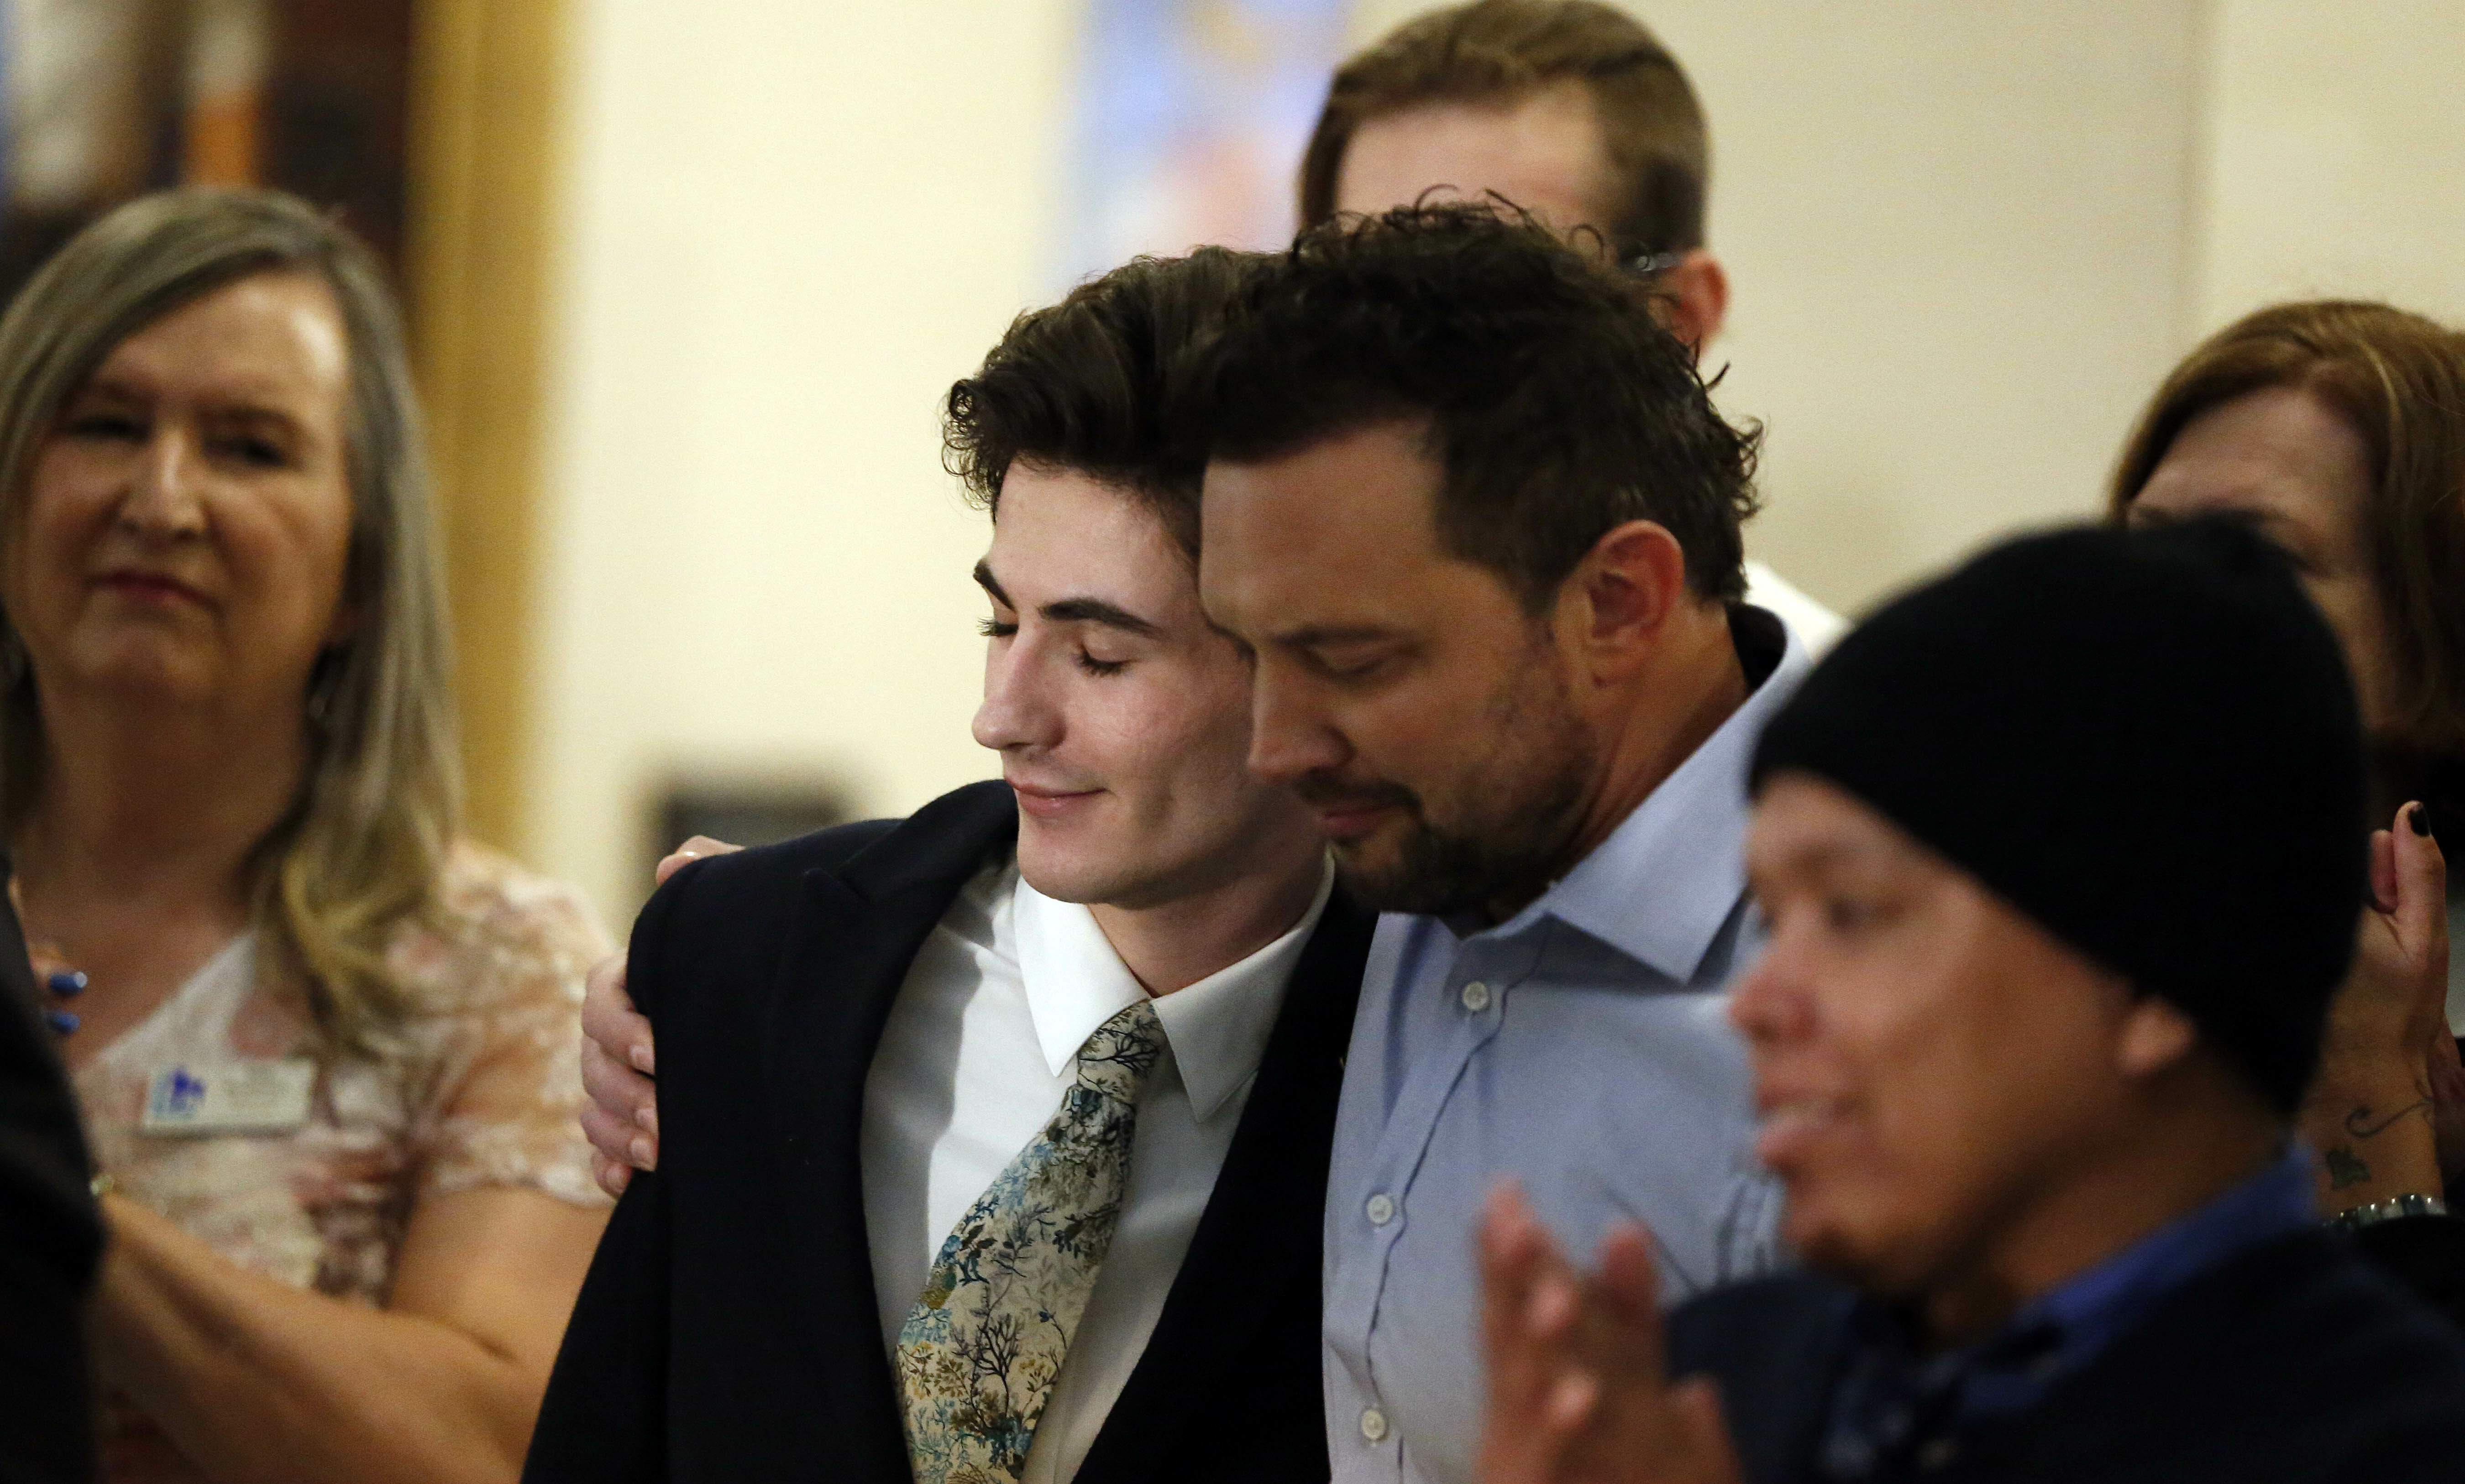 Nathan Dalley, center, receives a hug after speaking during a news conference at the Utah State Capitol Thursday, Feb. 21, 2019, in Salt Lake City. Two Republican lawmakers proposed a ban on gay conversion therapy for minors in conservative Utah on Thursday, a plan that's been hailed as a milestone by advocates and won't be opposed by the influential Mormon church. Those who have been through conversion therapy, like 19-year-old Dalley, say it leaves them depressed and can lead to suicide attempts. (AP Photo/Rick Bowmer)